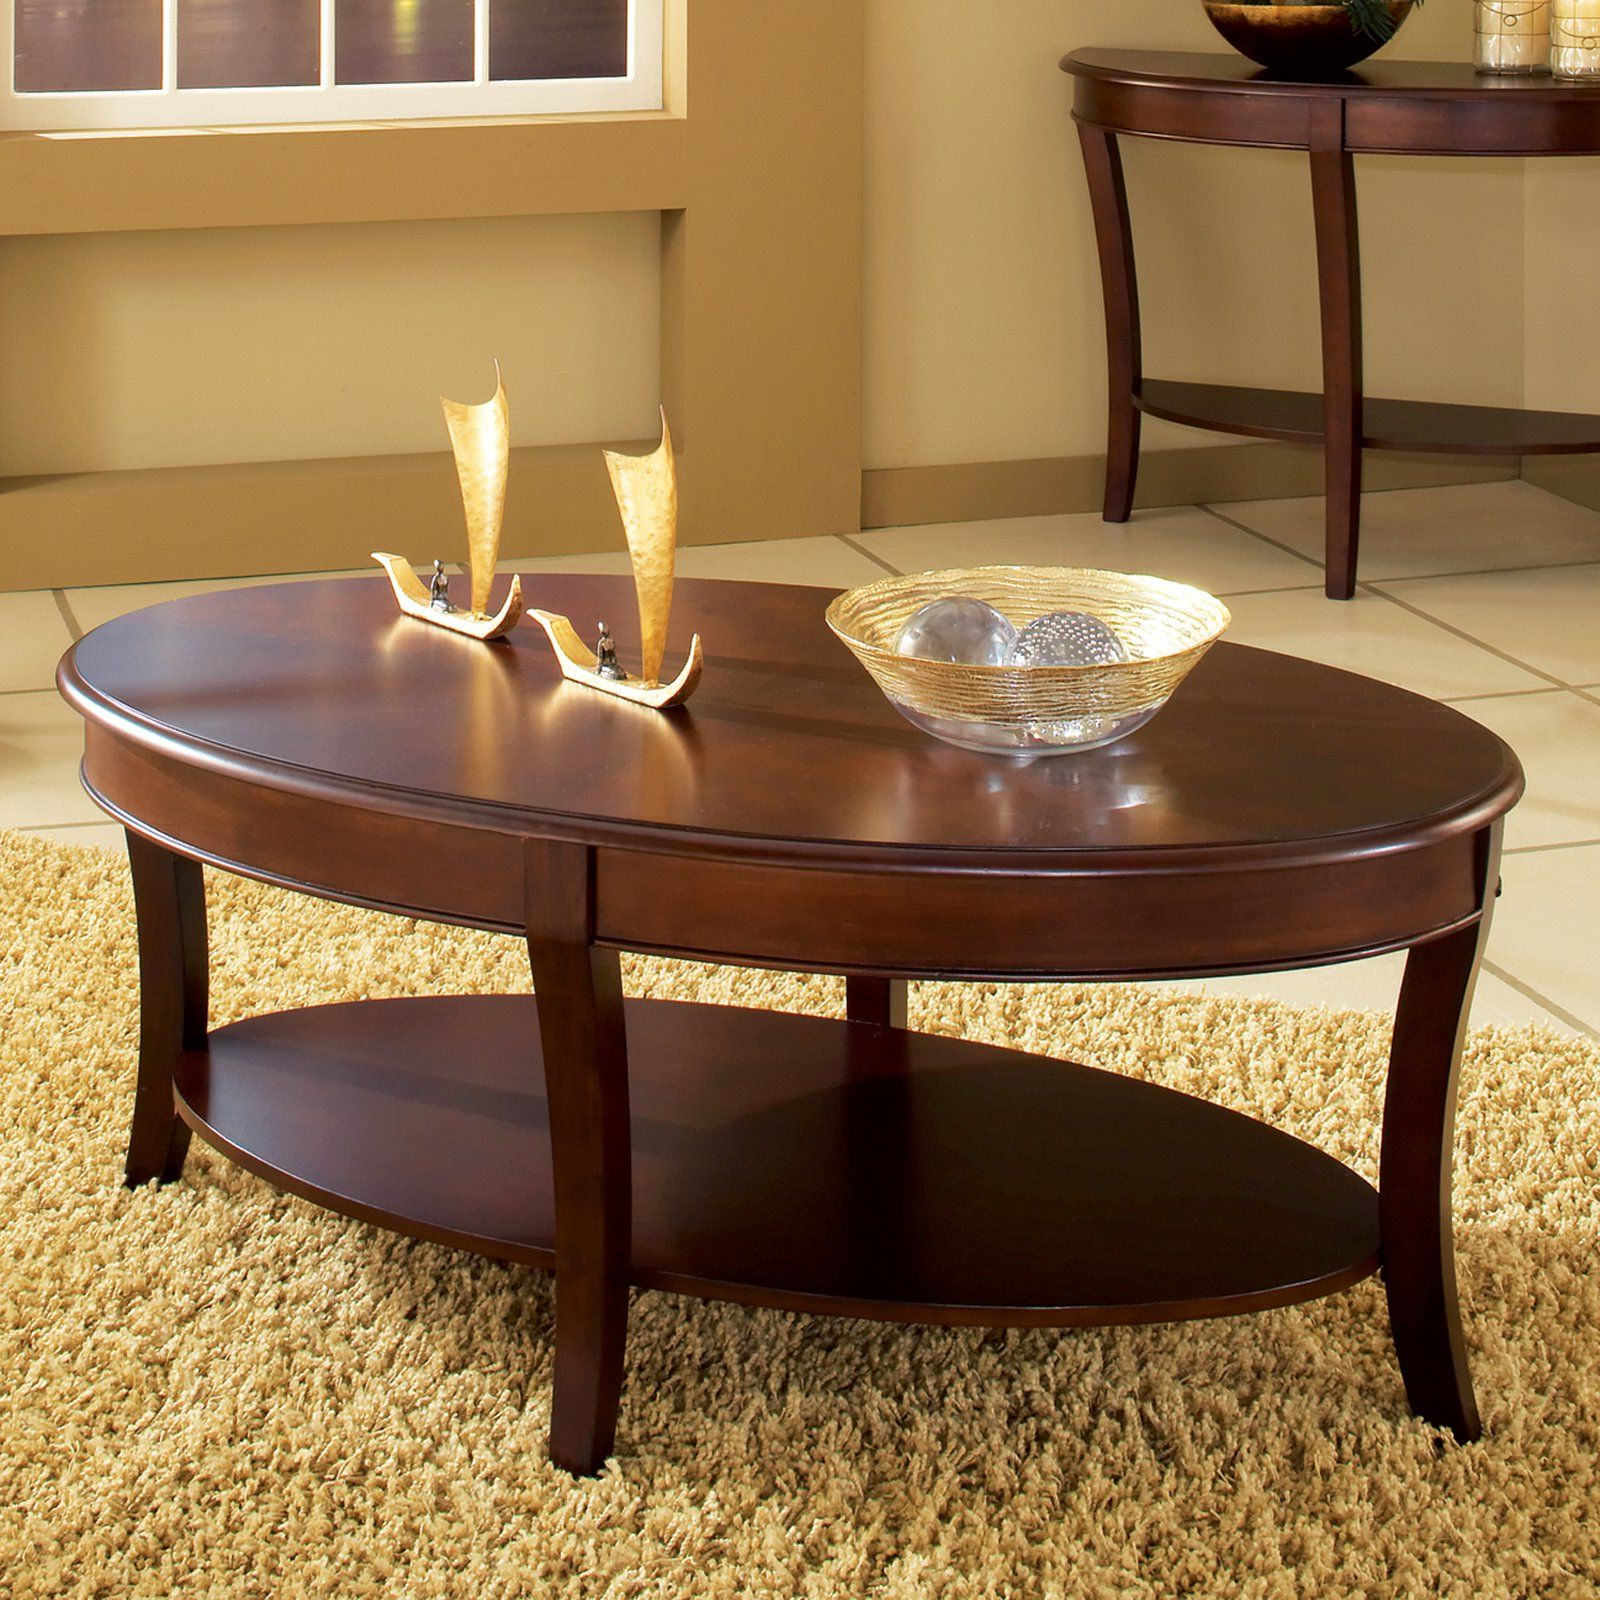 From With Regard To Well Liked Winslet Cherry Finish Wood Oval Coffee Tables With Casters (View 6 of 20)